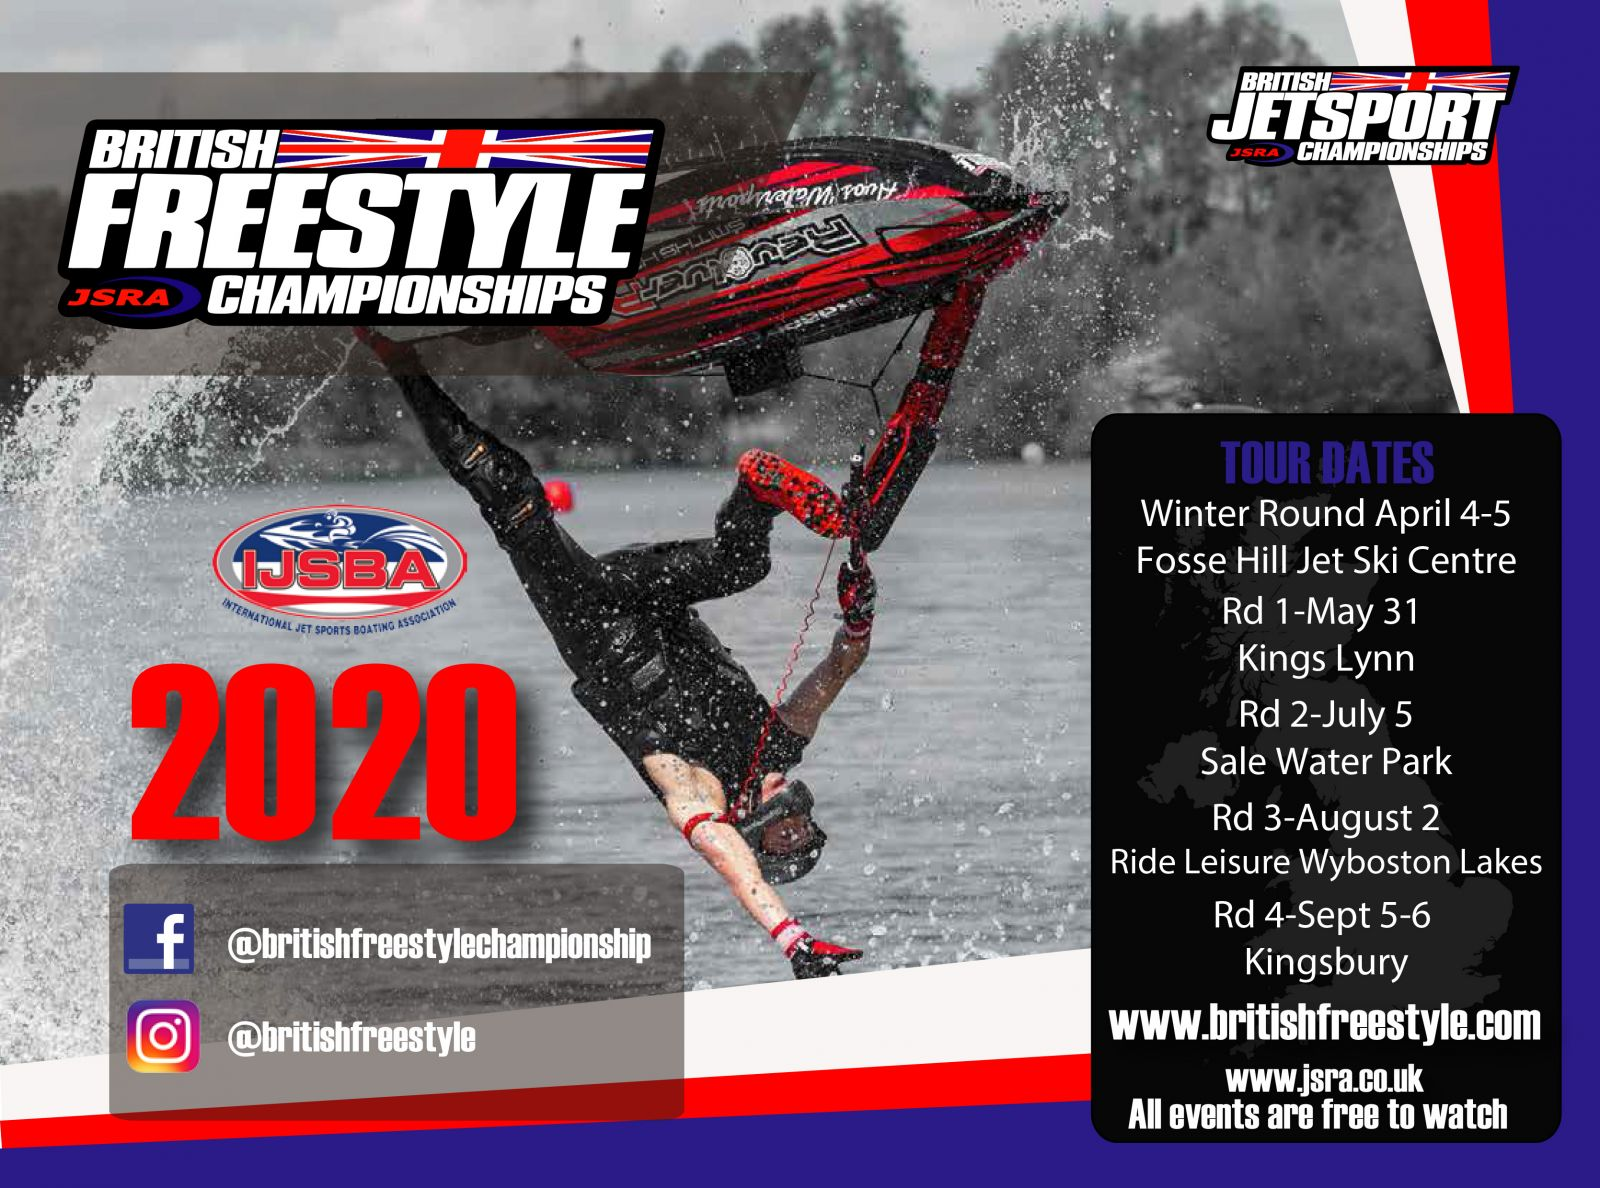 Attention all Freestylers and supporters of freestyle for 2020